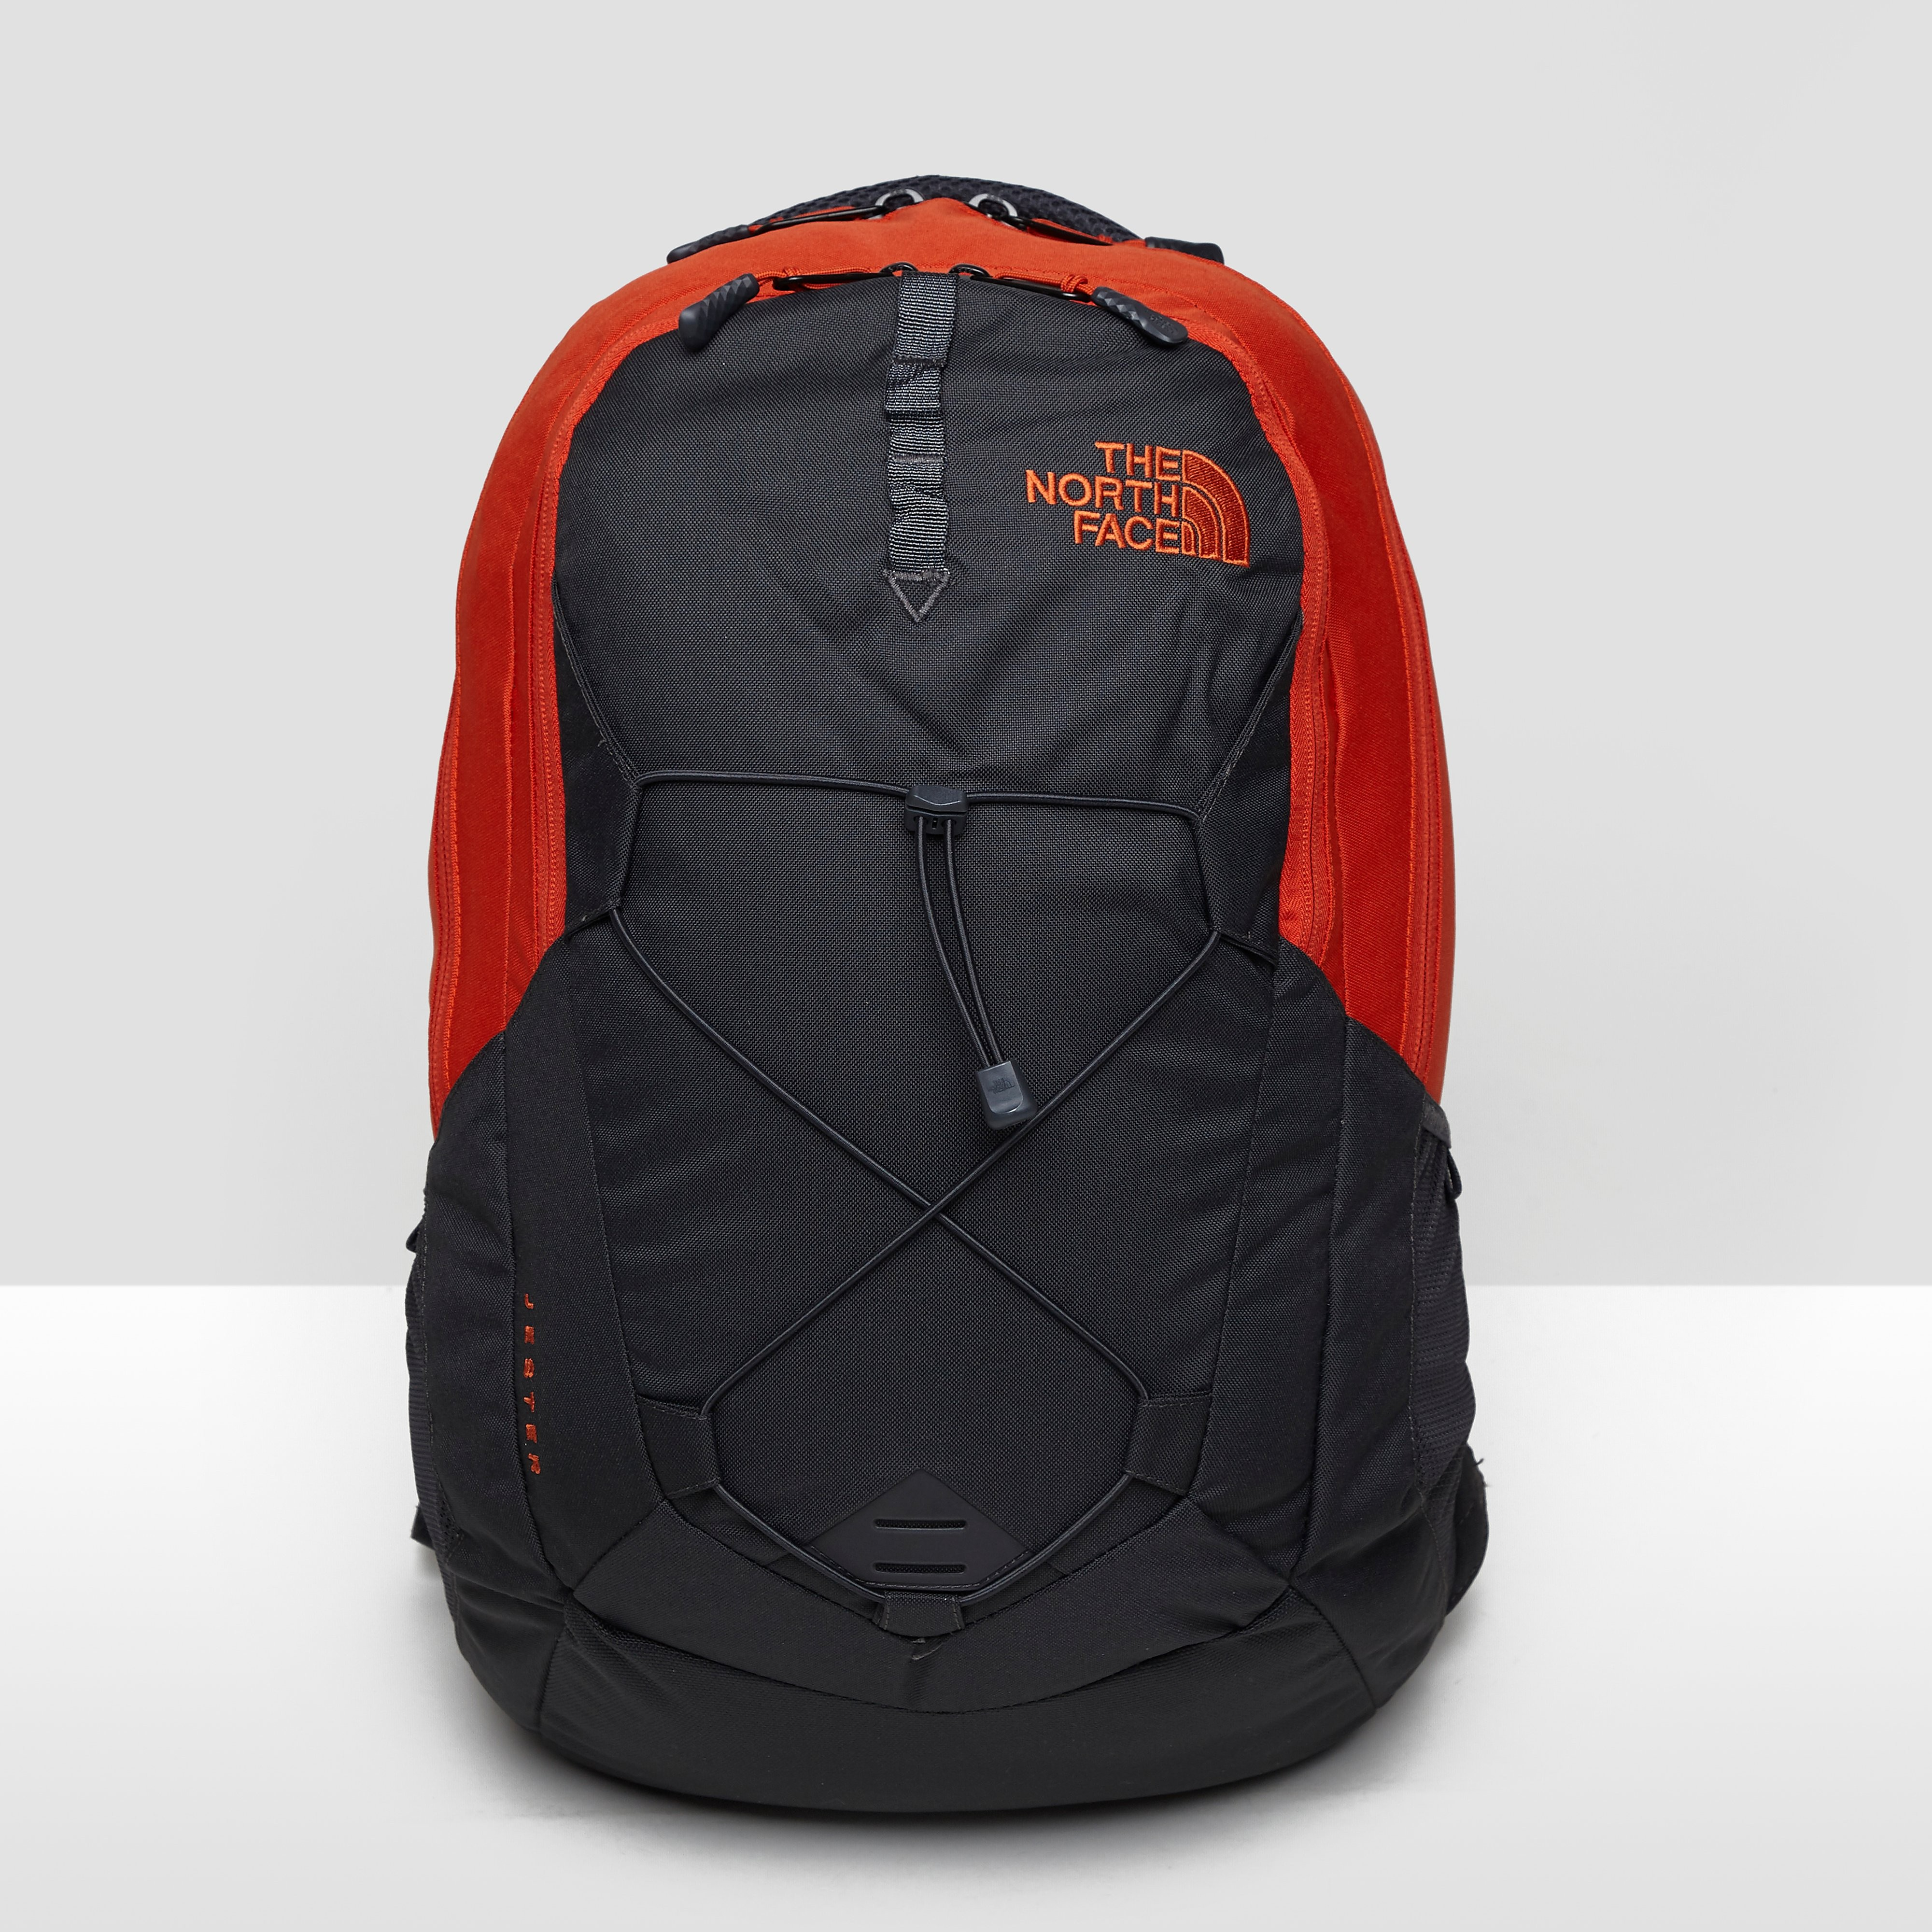 THE NORTH FACE JESTER ORANJE/GRIJS